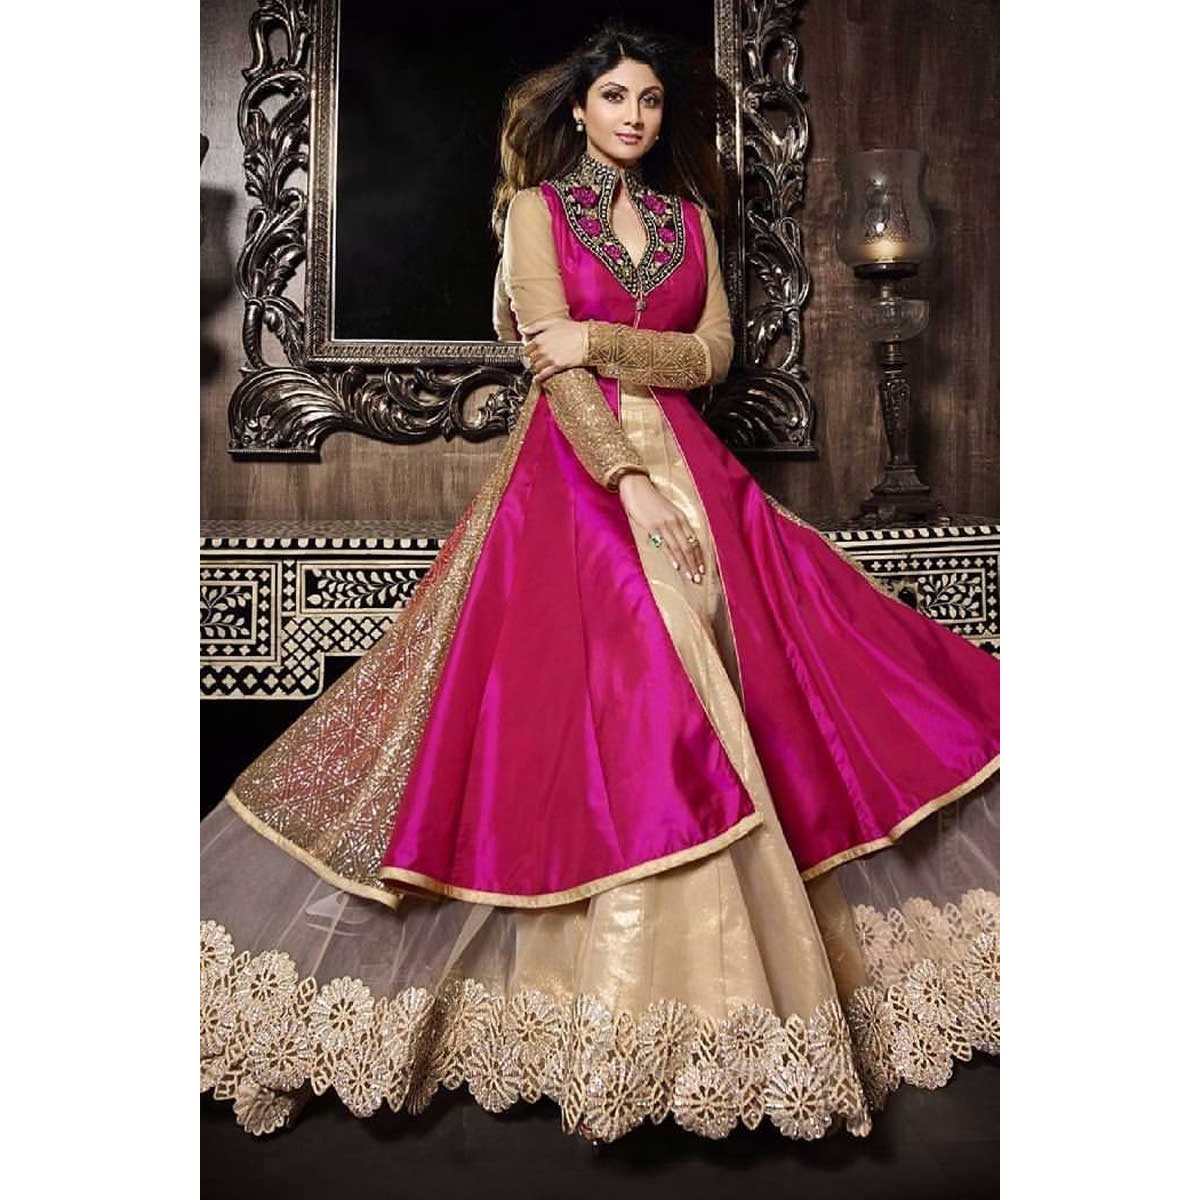 da0dc434c4 Buy Magenta Taffeta Silk Jacket With Beige Net Lehenga Online ...